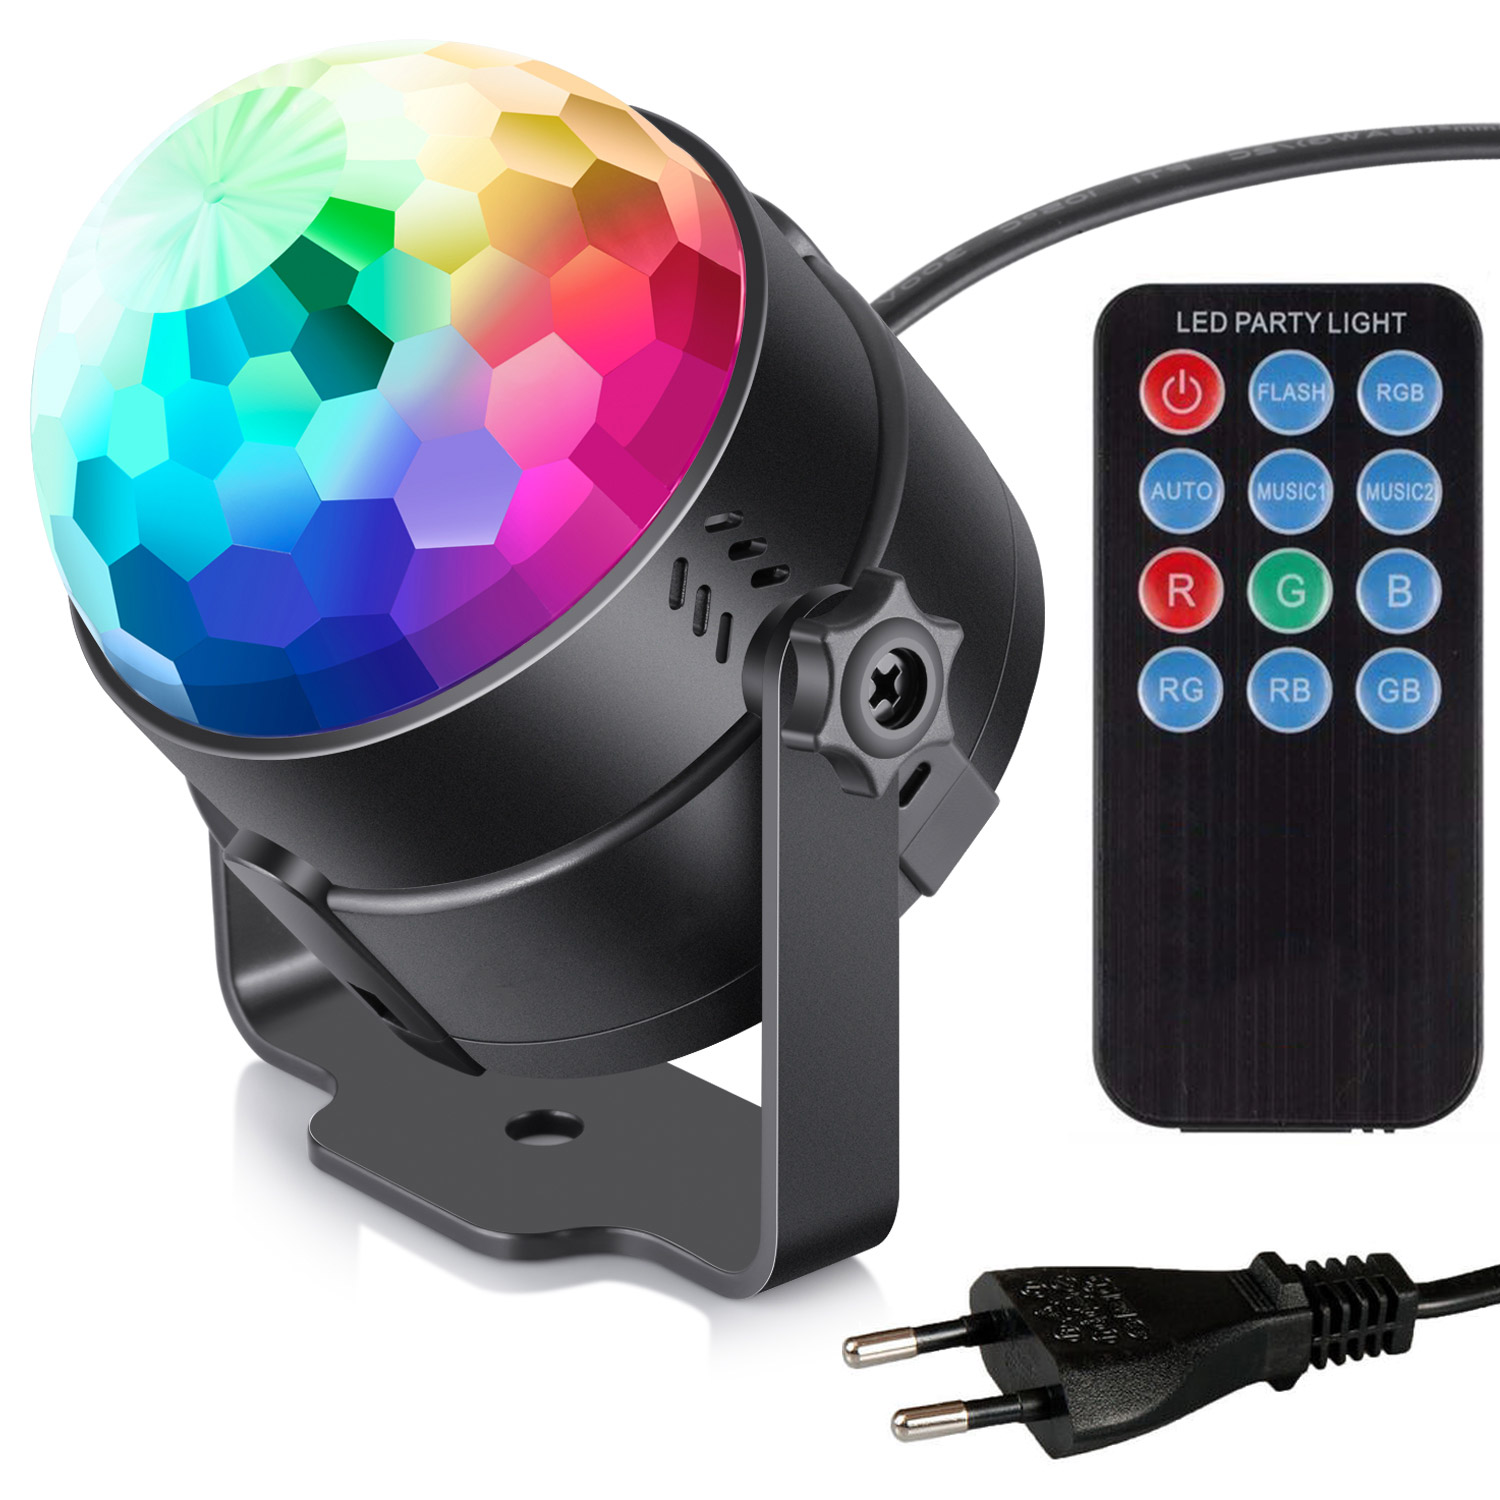 Image of   Diskokugle med roterende RGB lys og fjernbetjening (LED Party Light)